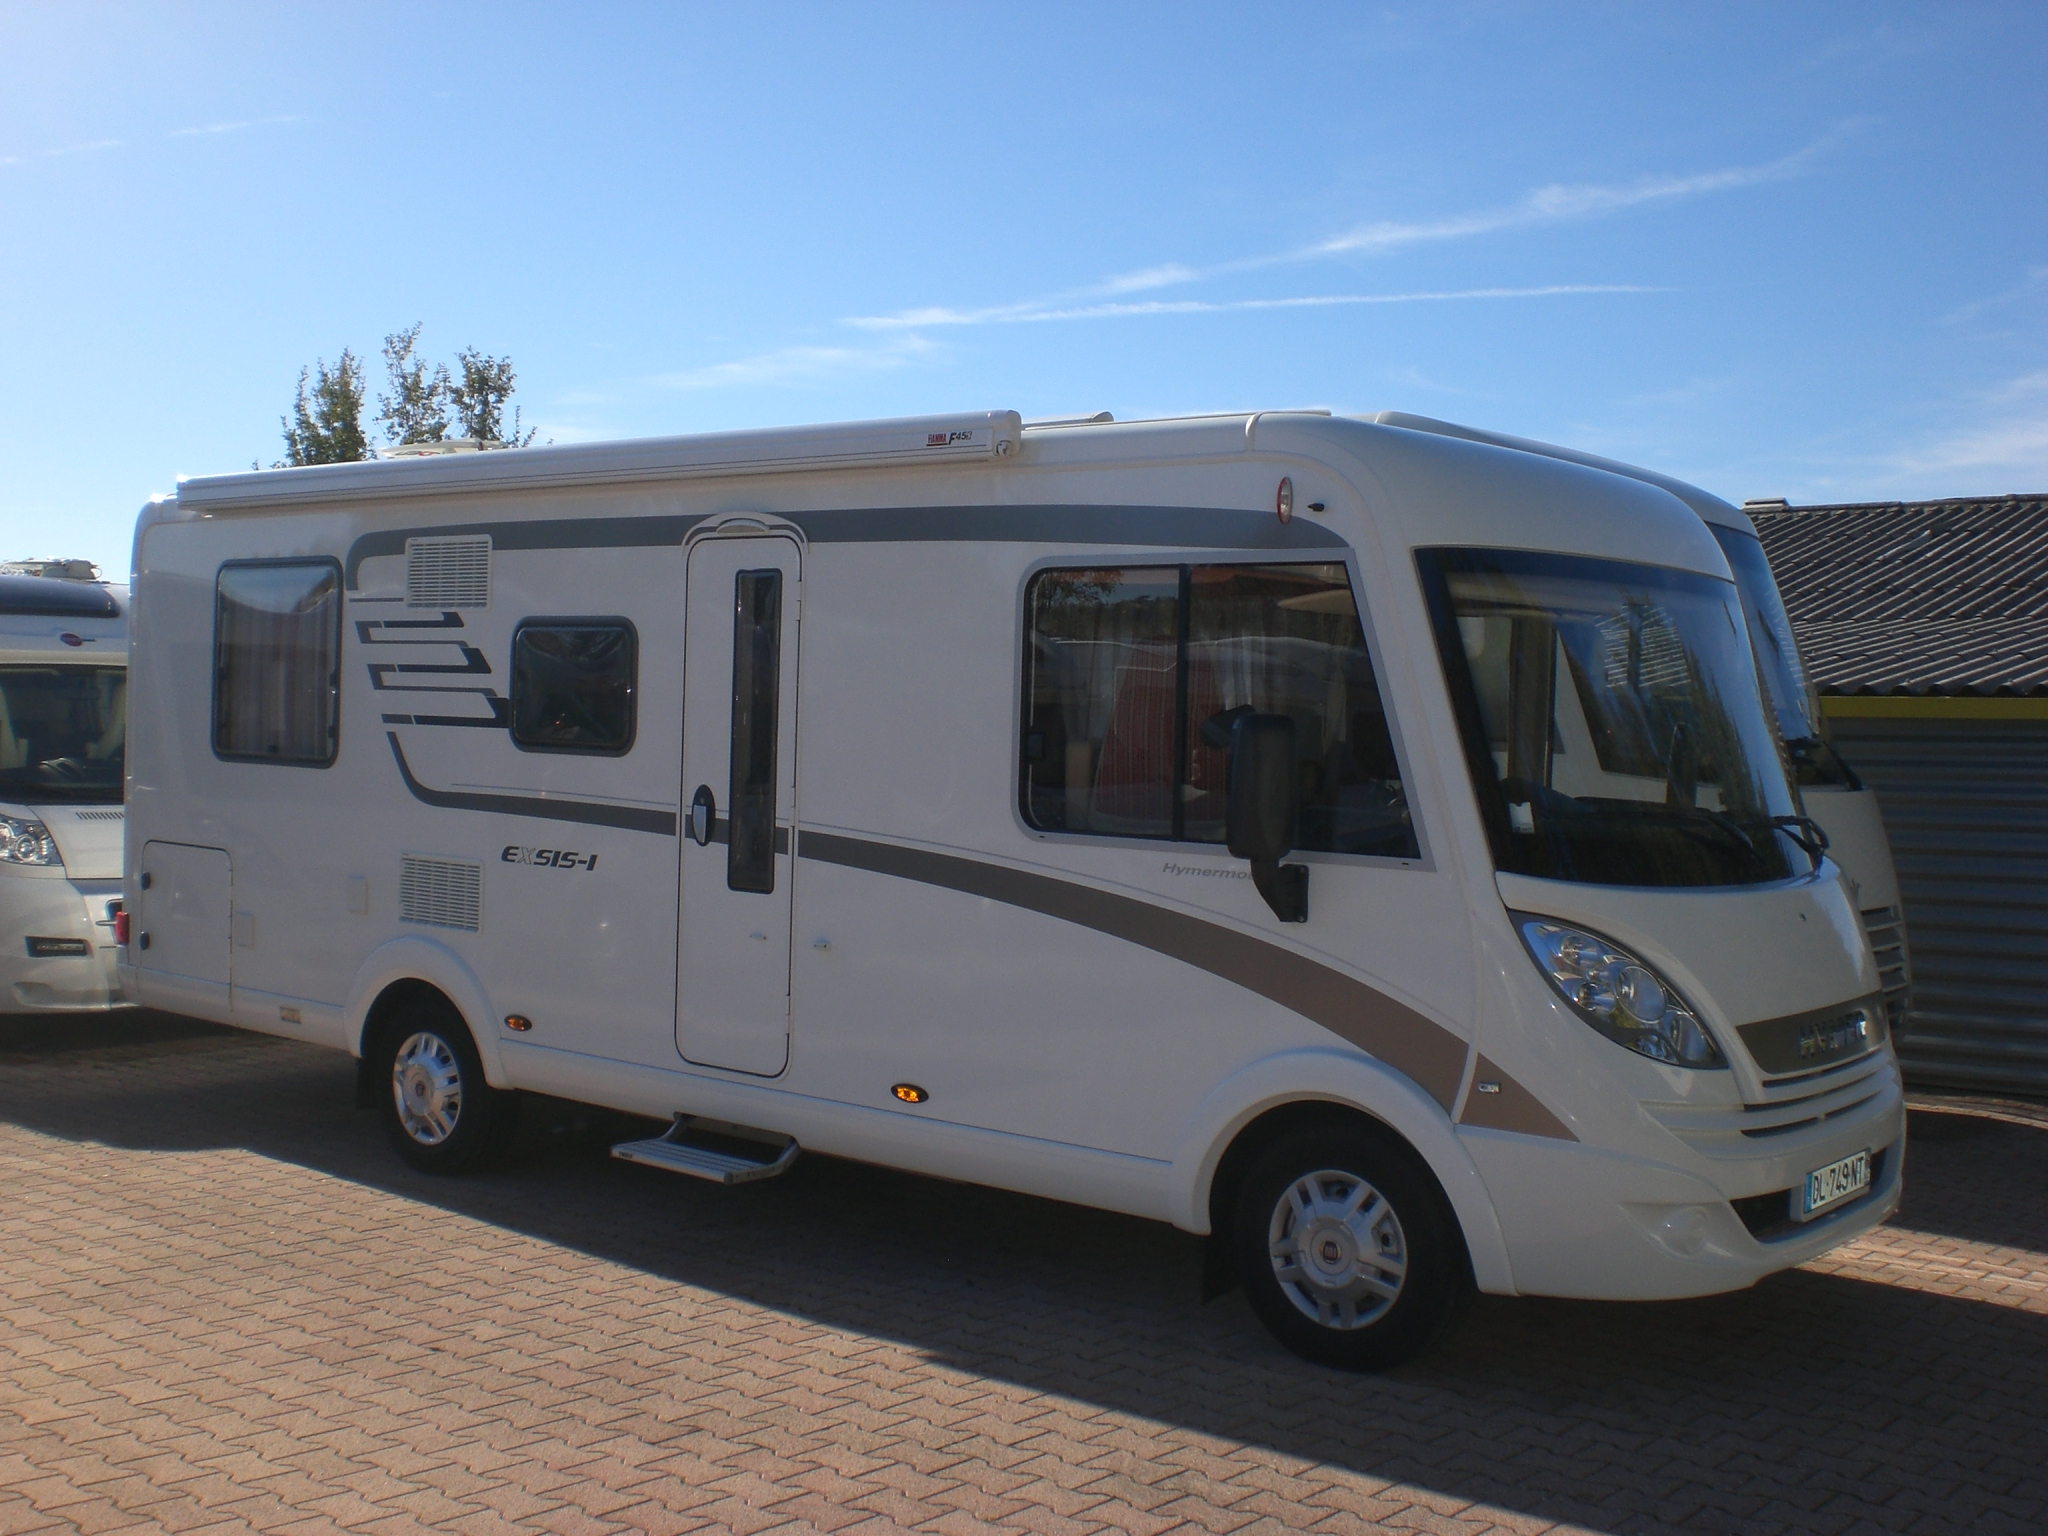 hymer exsis i 698 occasion porteur fiat 2 3 l 130 ch camping car vendre en loire 42 ref. Black Bedroom Furniture Sets. Home Design Ideas